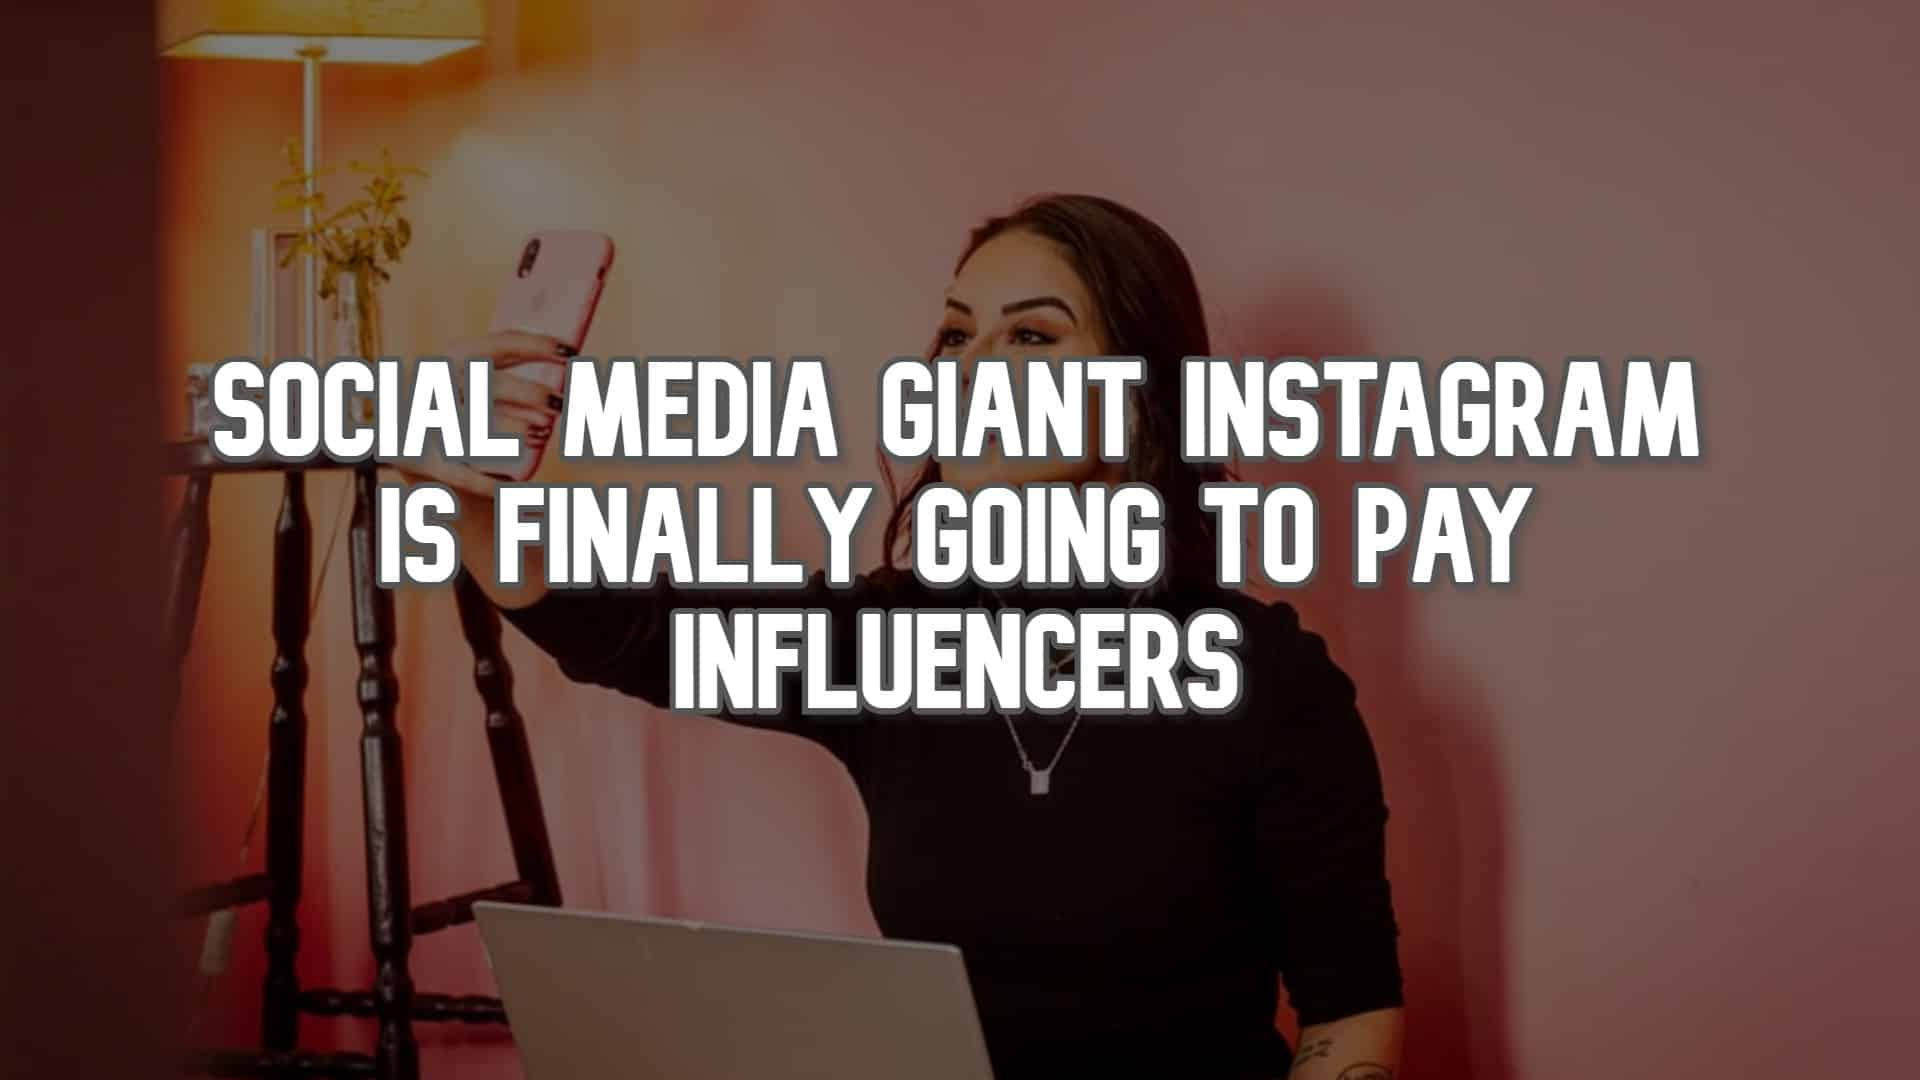 Social-Media-Giant-Instagram-is-Finally-Going-to-Pay-Influencers.jpg